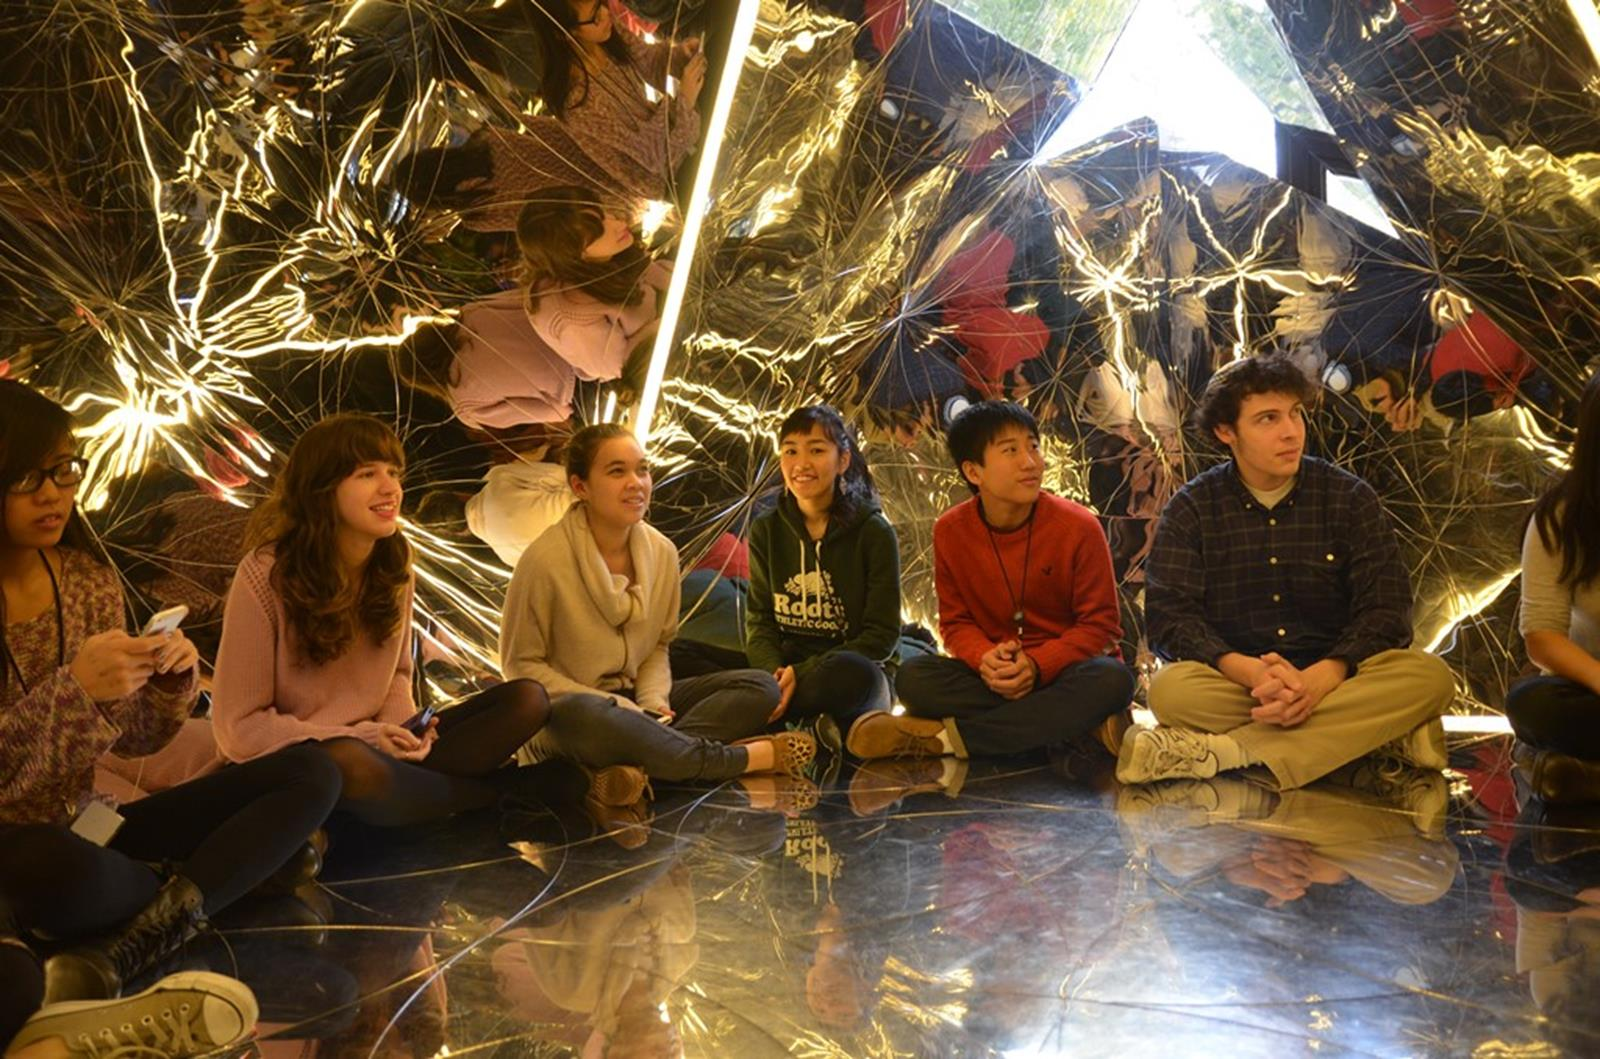 Students explore an exhibit at the Jewish Museum. Credit: Jewish Museum